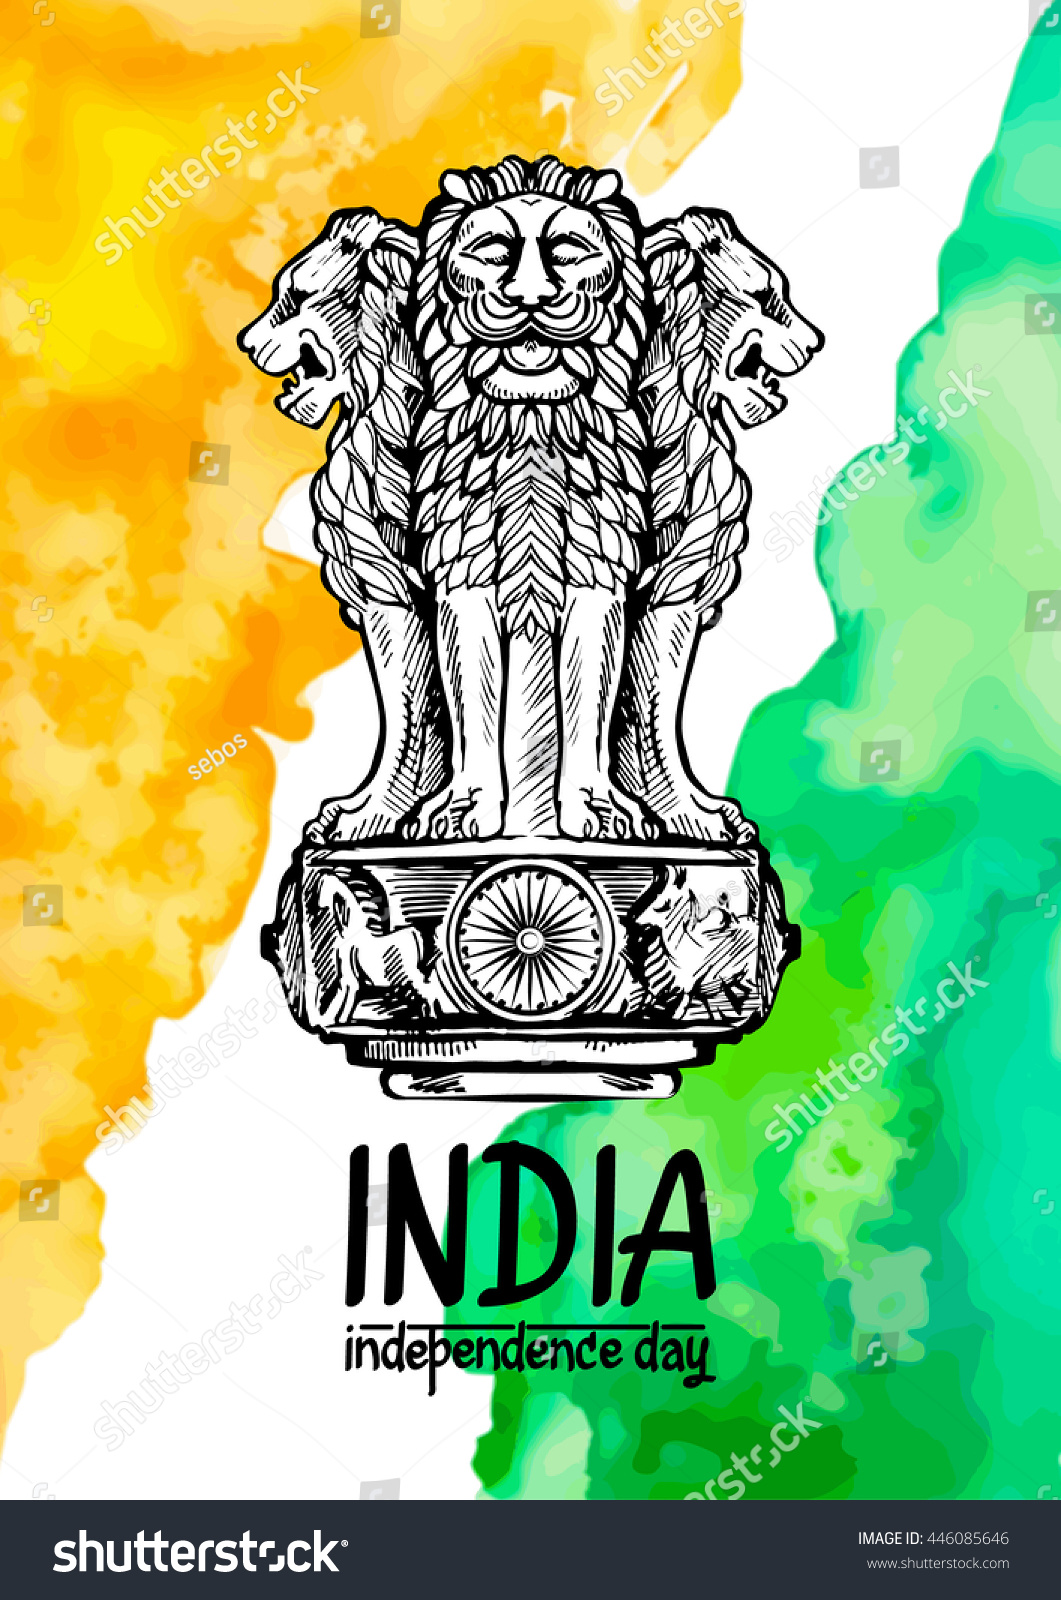 Colors website ashoka - Lion Capital Of Ashoka In Indian Flag Color Emblem Of India Watercolor Texture Backdrop